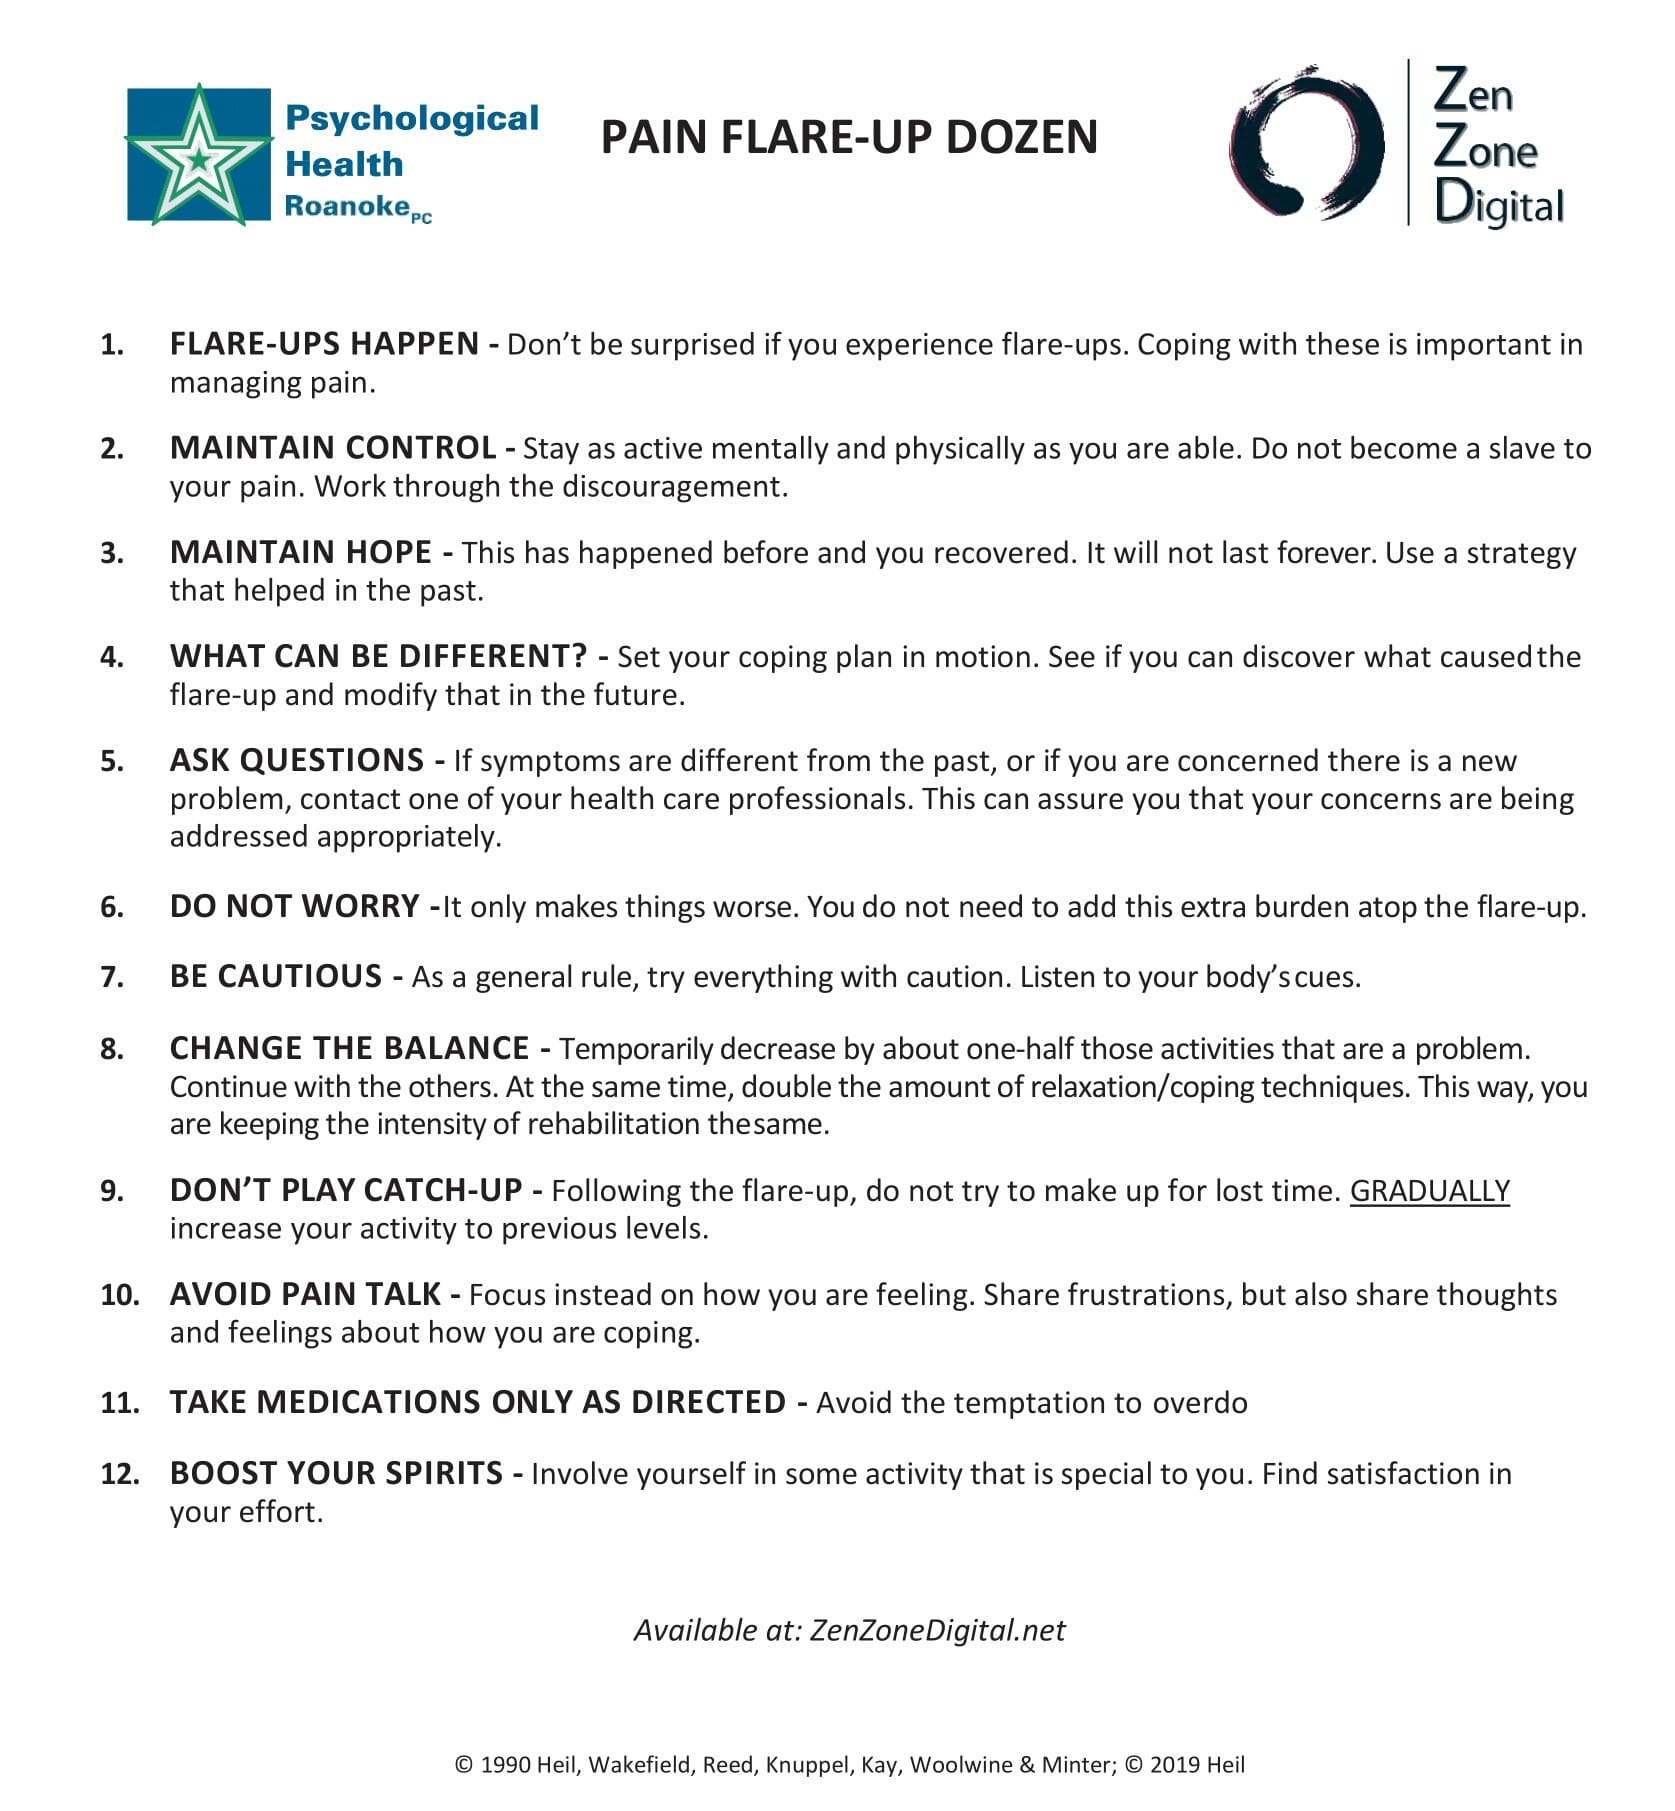 Pain Flare Ups and 12 tips for coping